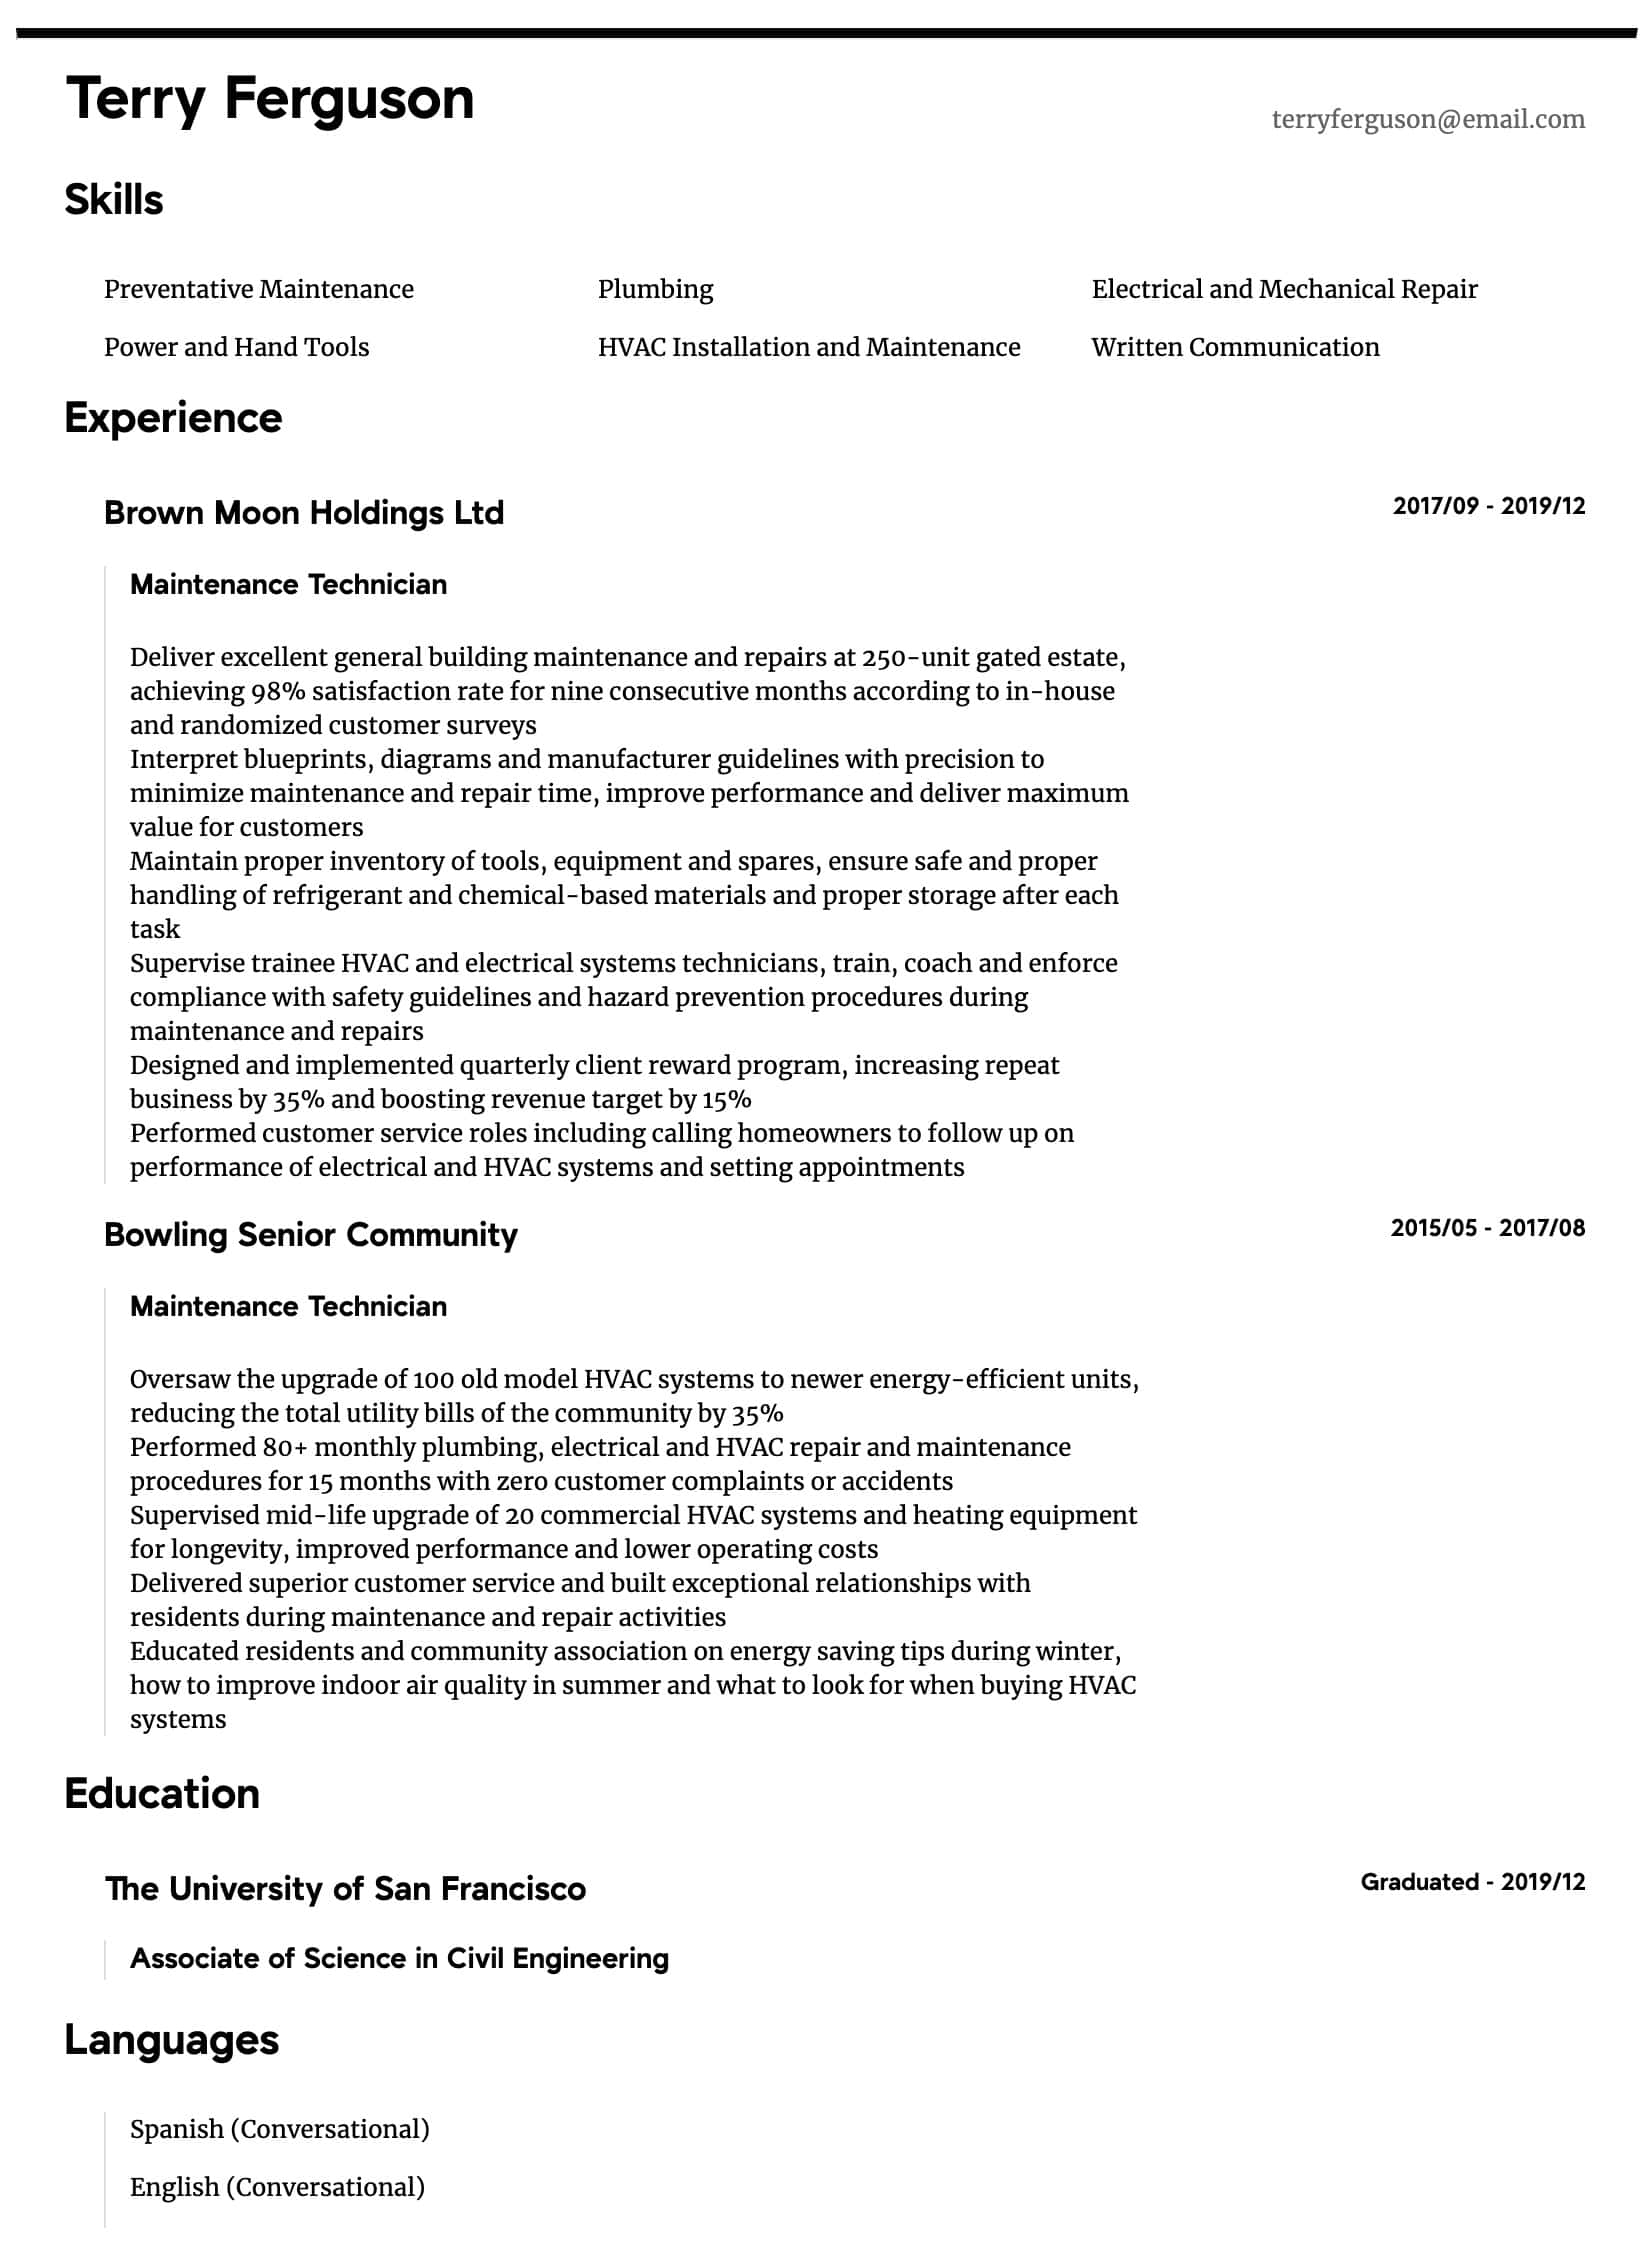 Maintenance Technician Resume Samples All Experience Levels Resume Com Resume Com